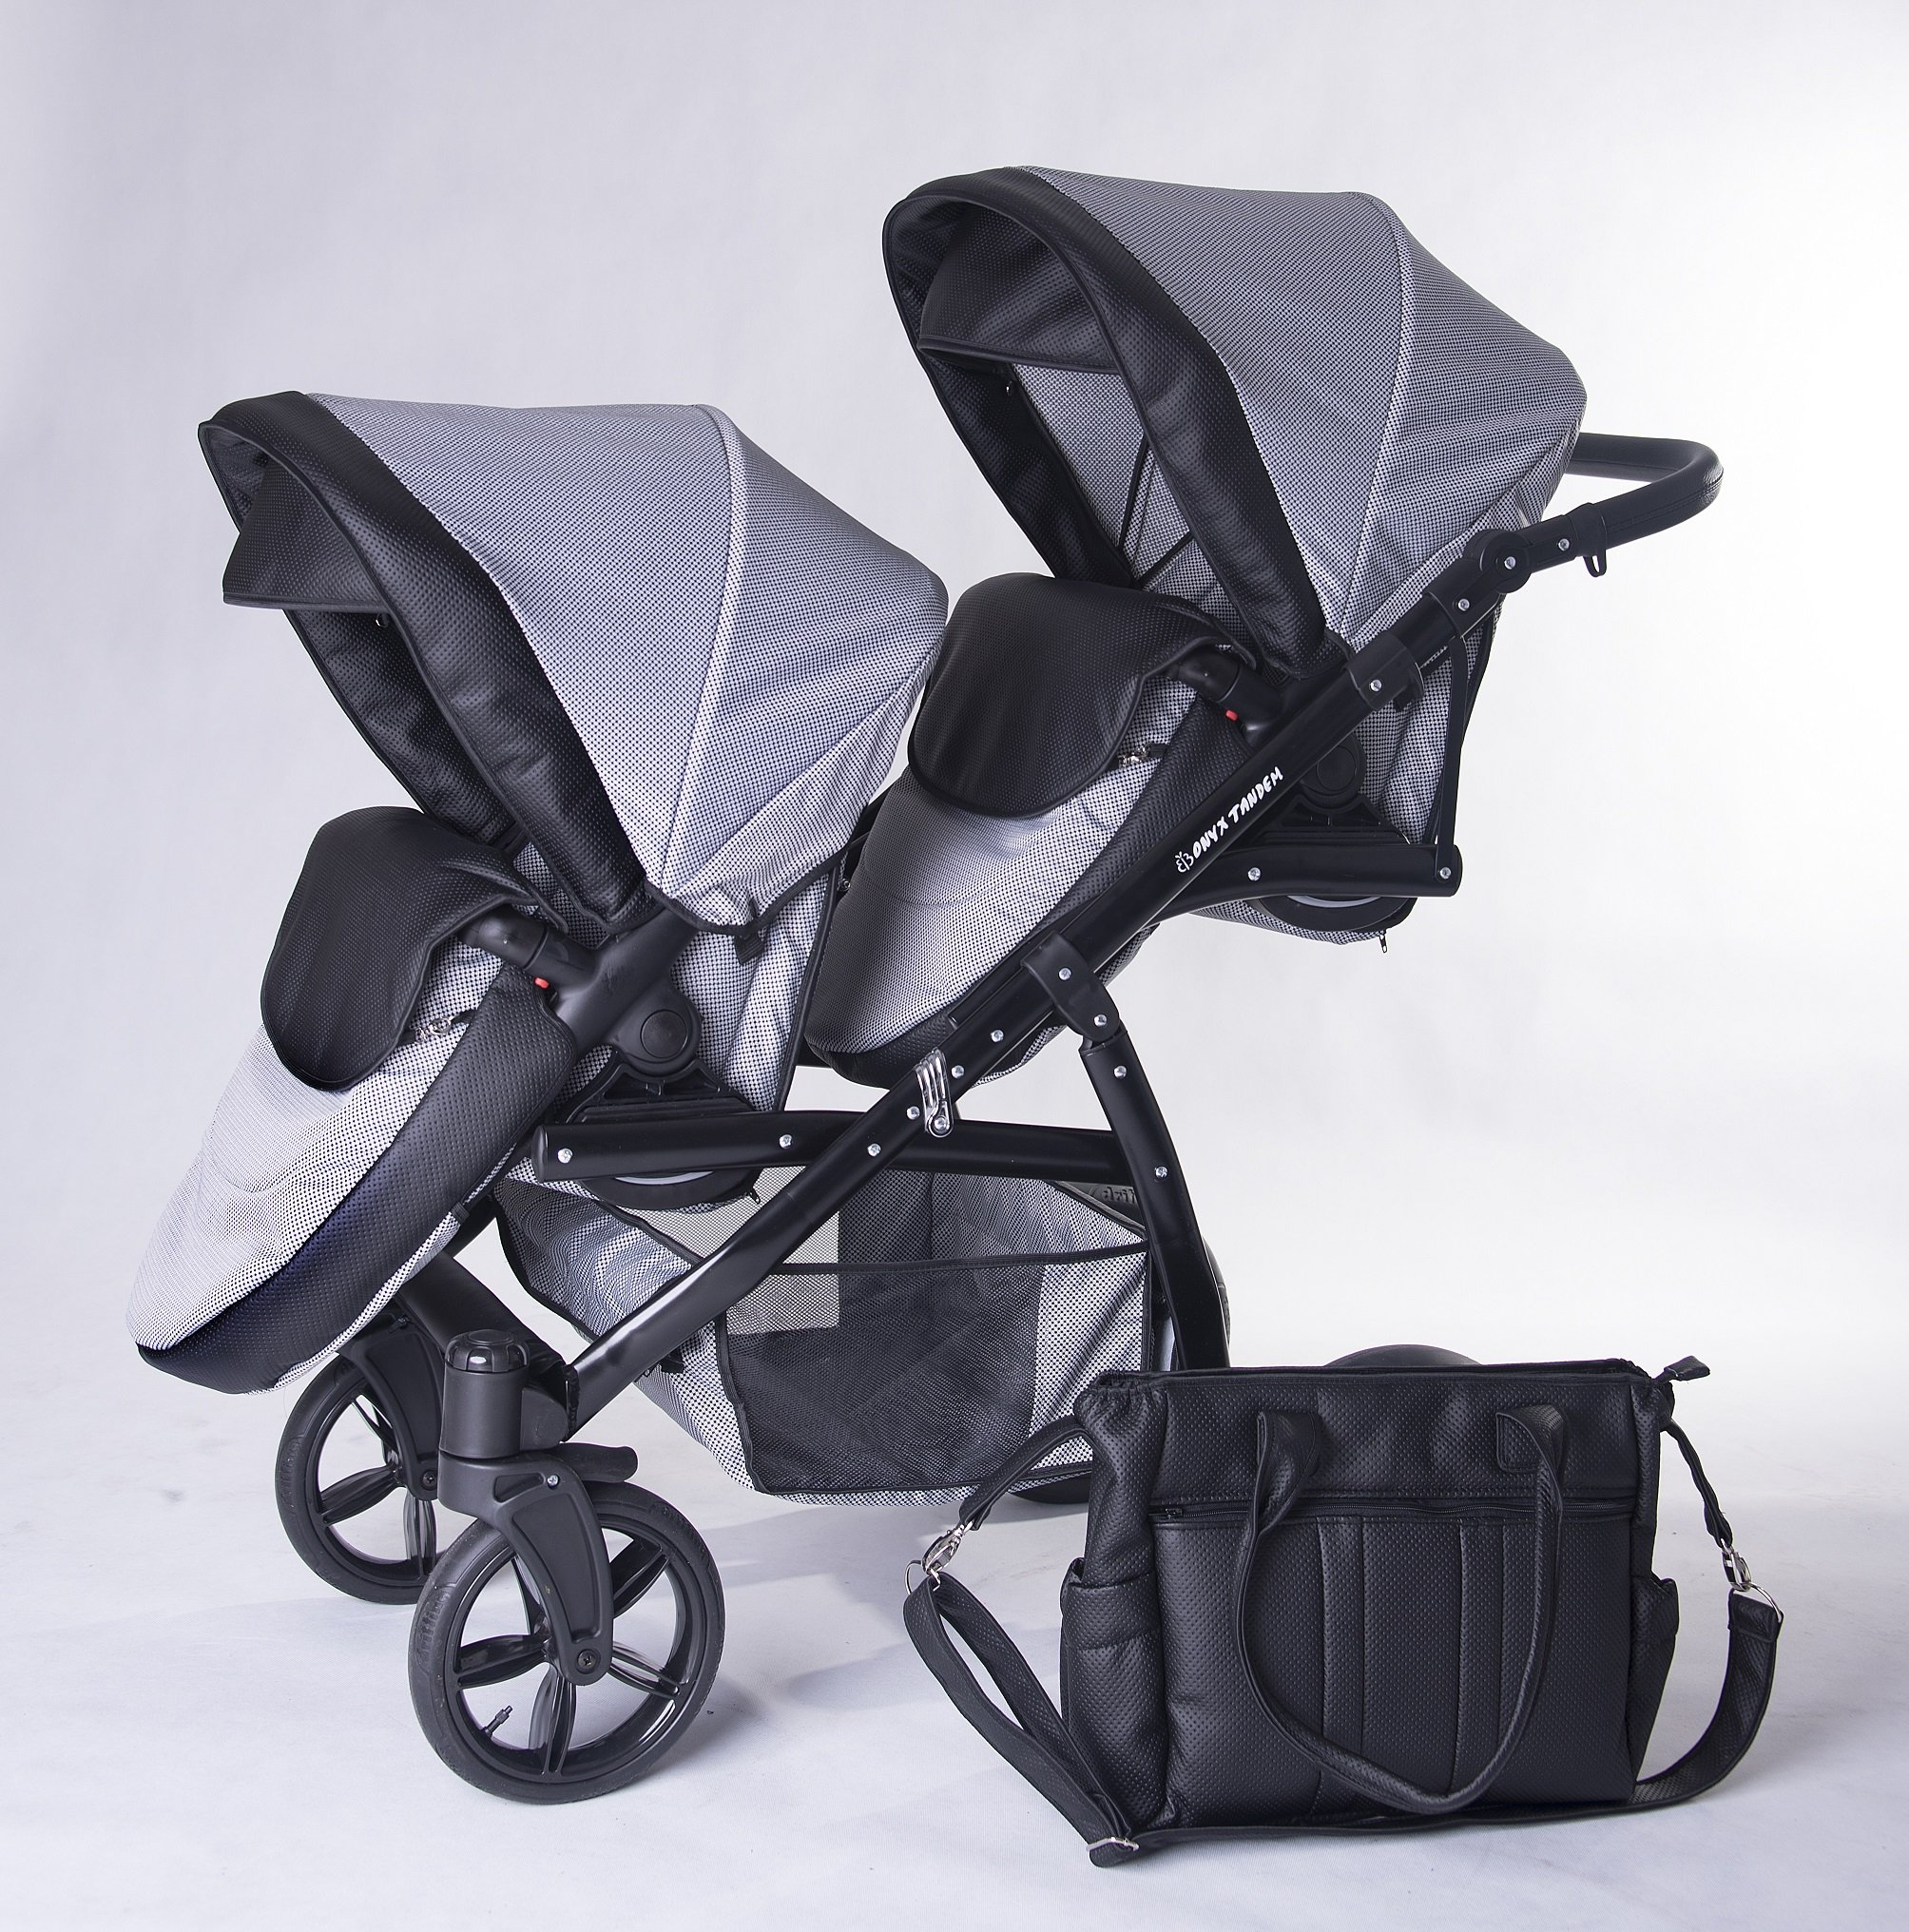 Twins pram 3in1: 2 carrycots + 2 buggies + 2 car seats + 2 ISOFIX + accesories. Grey + black ecoleather. BBtwin double pram Berber Carlo Directly from factory, guarantee color: grey + Mint, Made in the European Union, according to the standards PN-EN 1888 Includes: 2Maxi-Cosi + 2chairs + 2Car Seats group 0+ isofix 2bases + Bag + 2Plastics, rain + 2nets + 2x Baby safety + 2Bars for the chairs. Dimensions: Length with two Maxi-Cosi: 134cm Width of the car chassis: 62cm folded: 89X 62X 30cm wheeled chassis with chairs/Maxi-Cosi Weight: 17kg, Weight: 9kg, handlebar height: 75cm to 105cm, tote bag inside: 79X 33cm, Chair: 93X 37cm 3